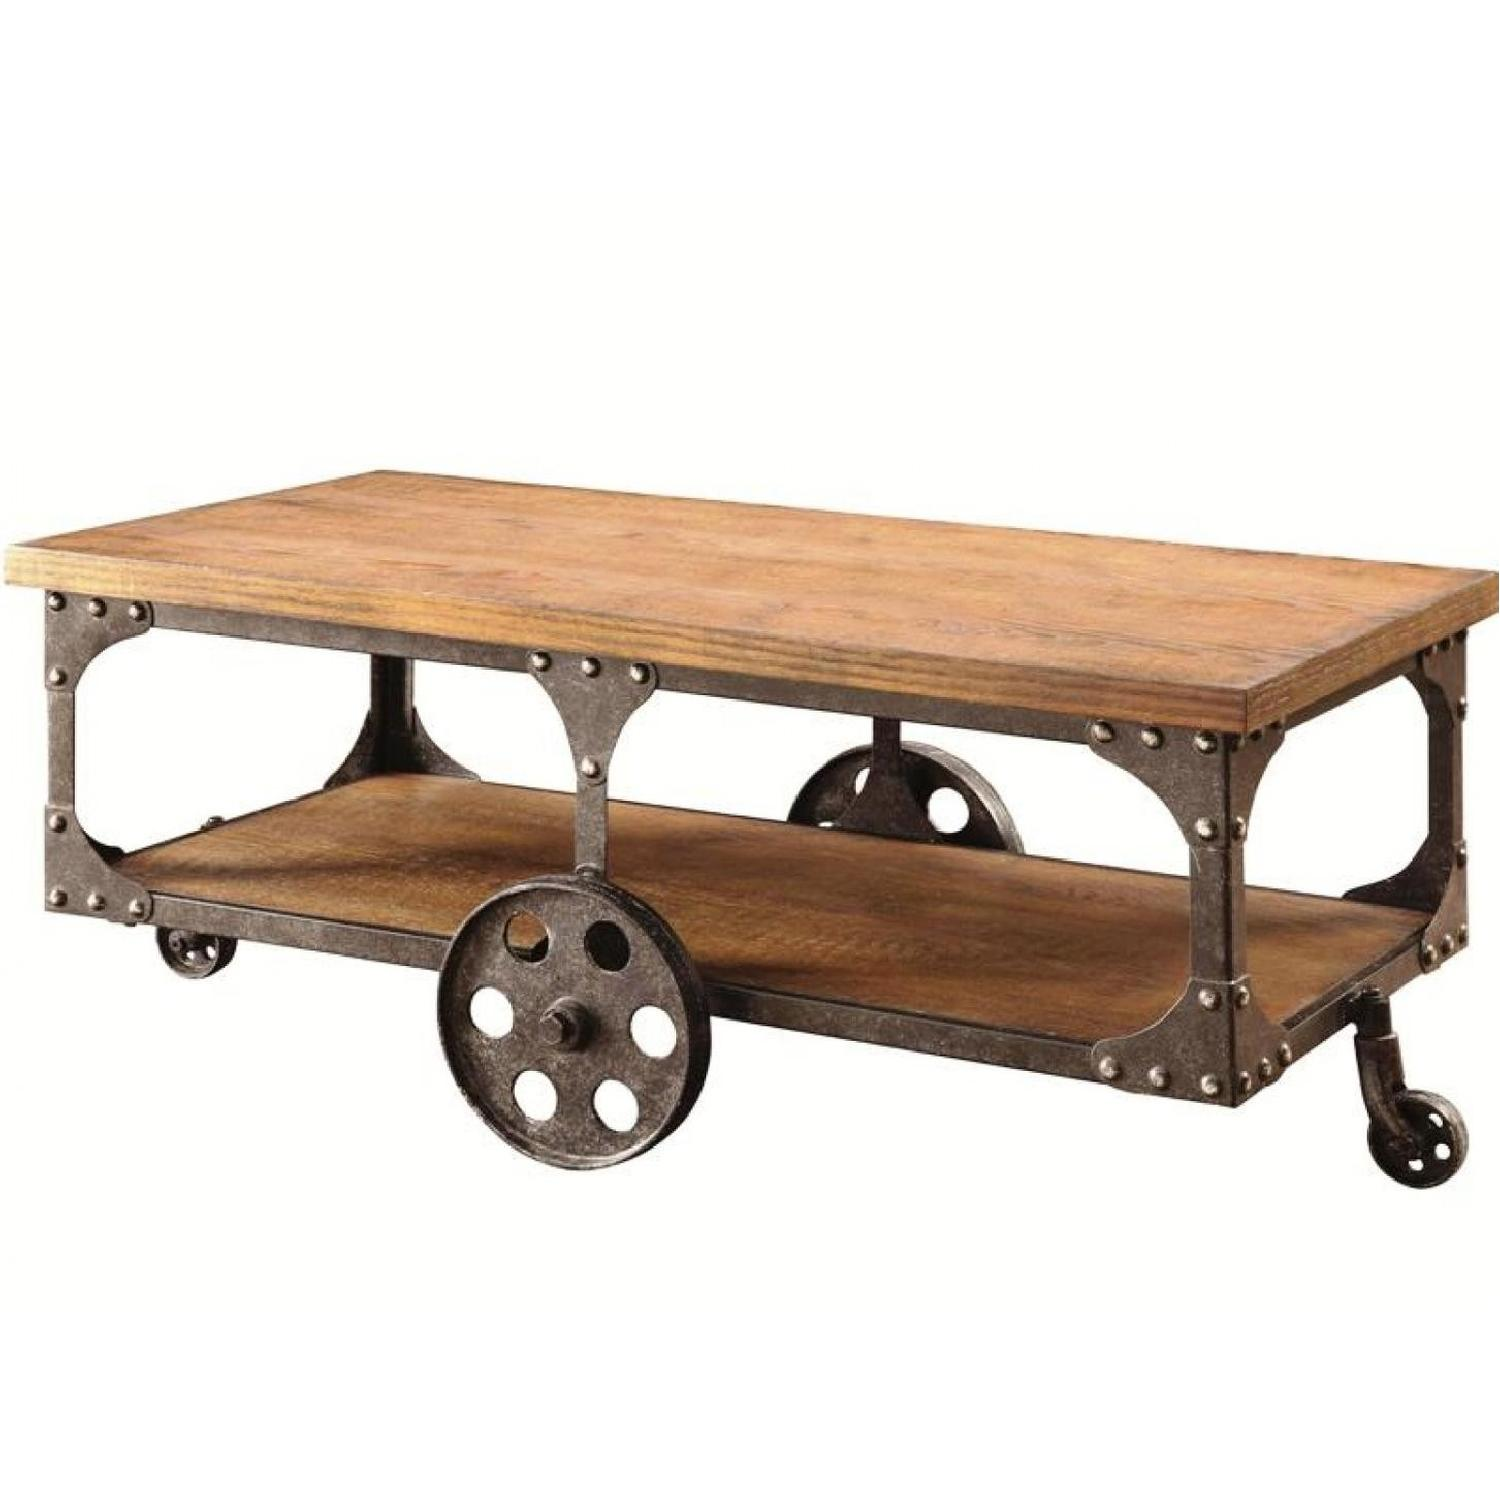 Rustic Brown Coffee Table w/ Metal Wheels - image-0